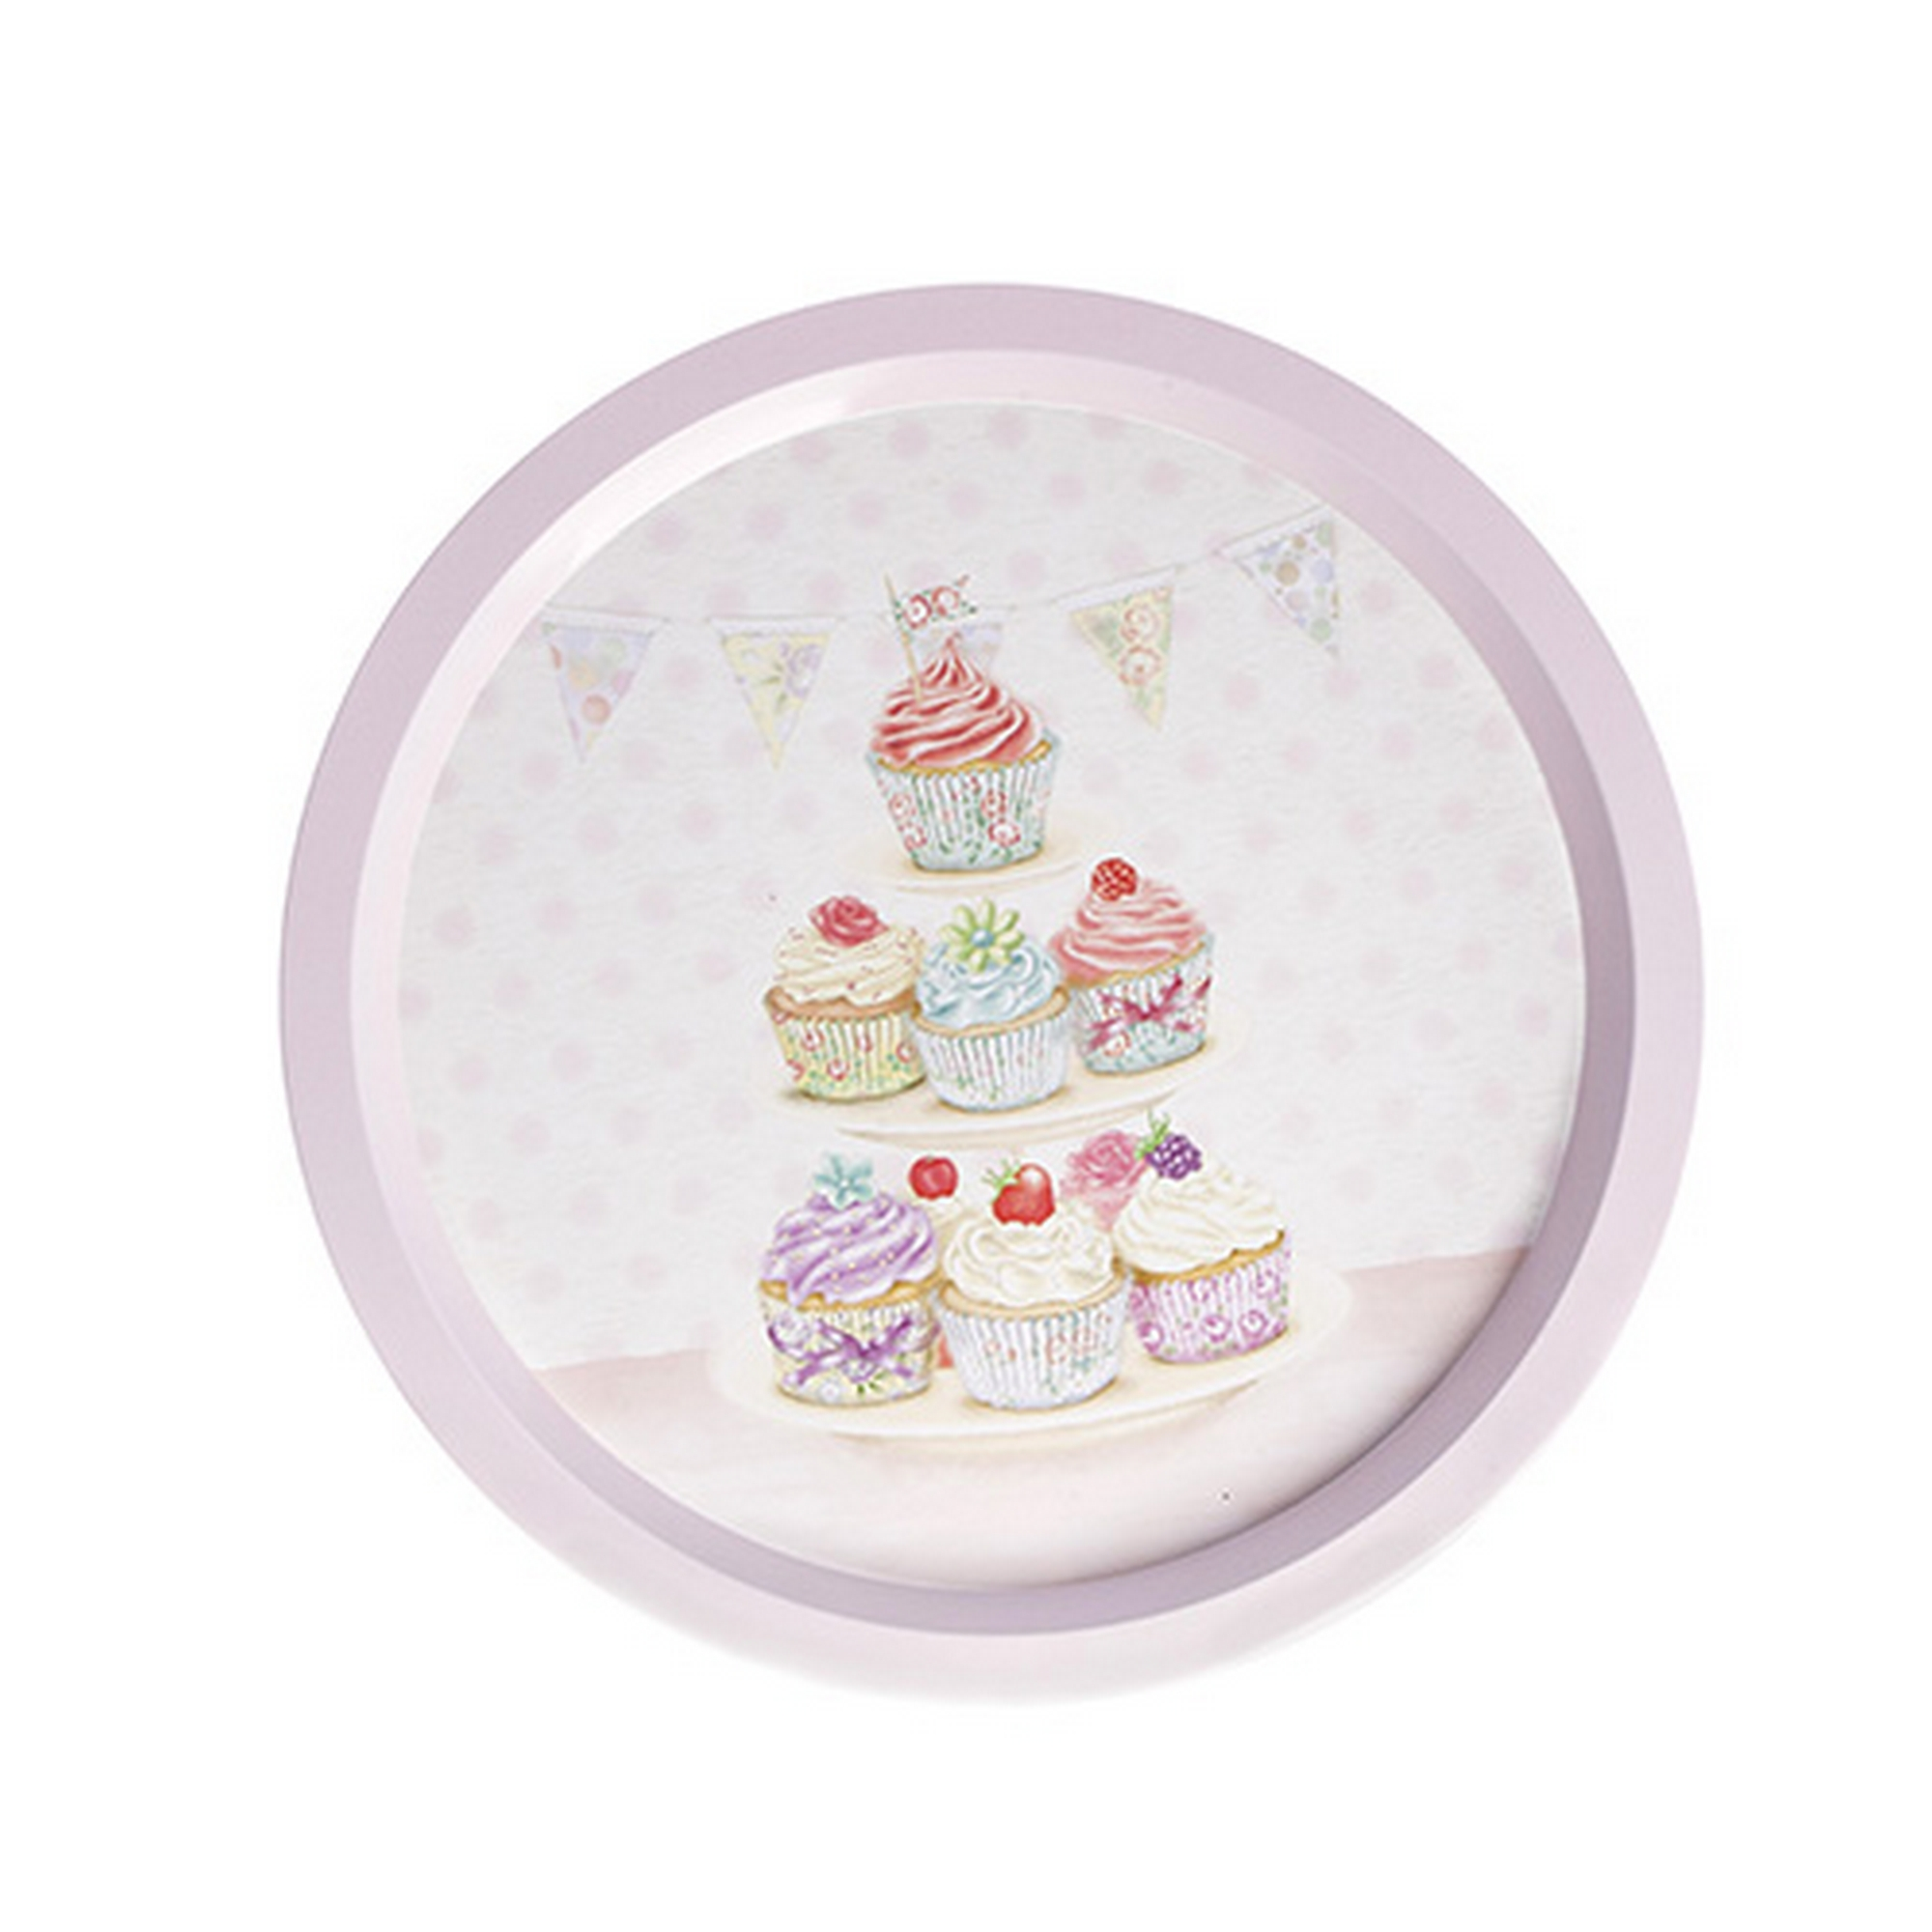 Round Fairy Cup Cake Design Tea and Drinks Tray